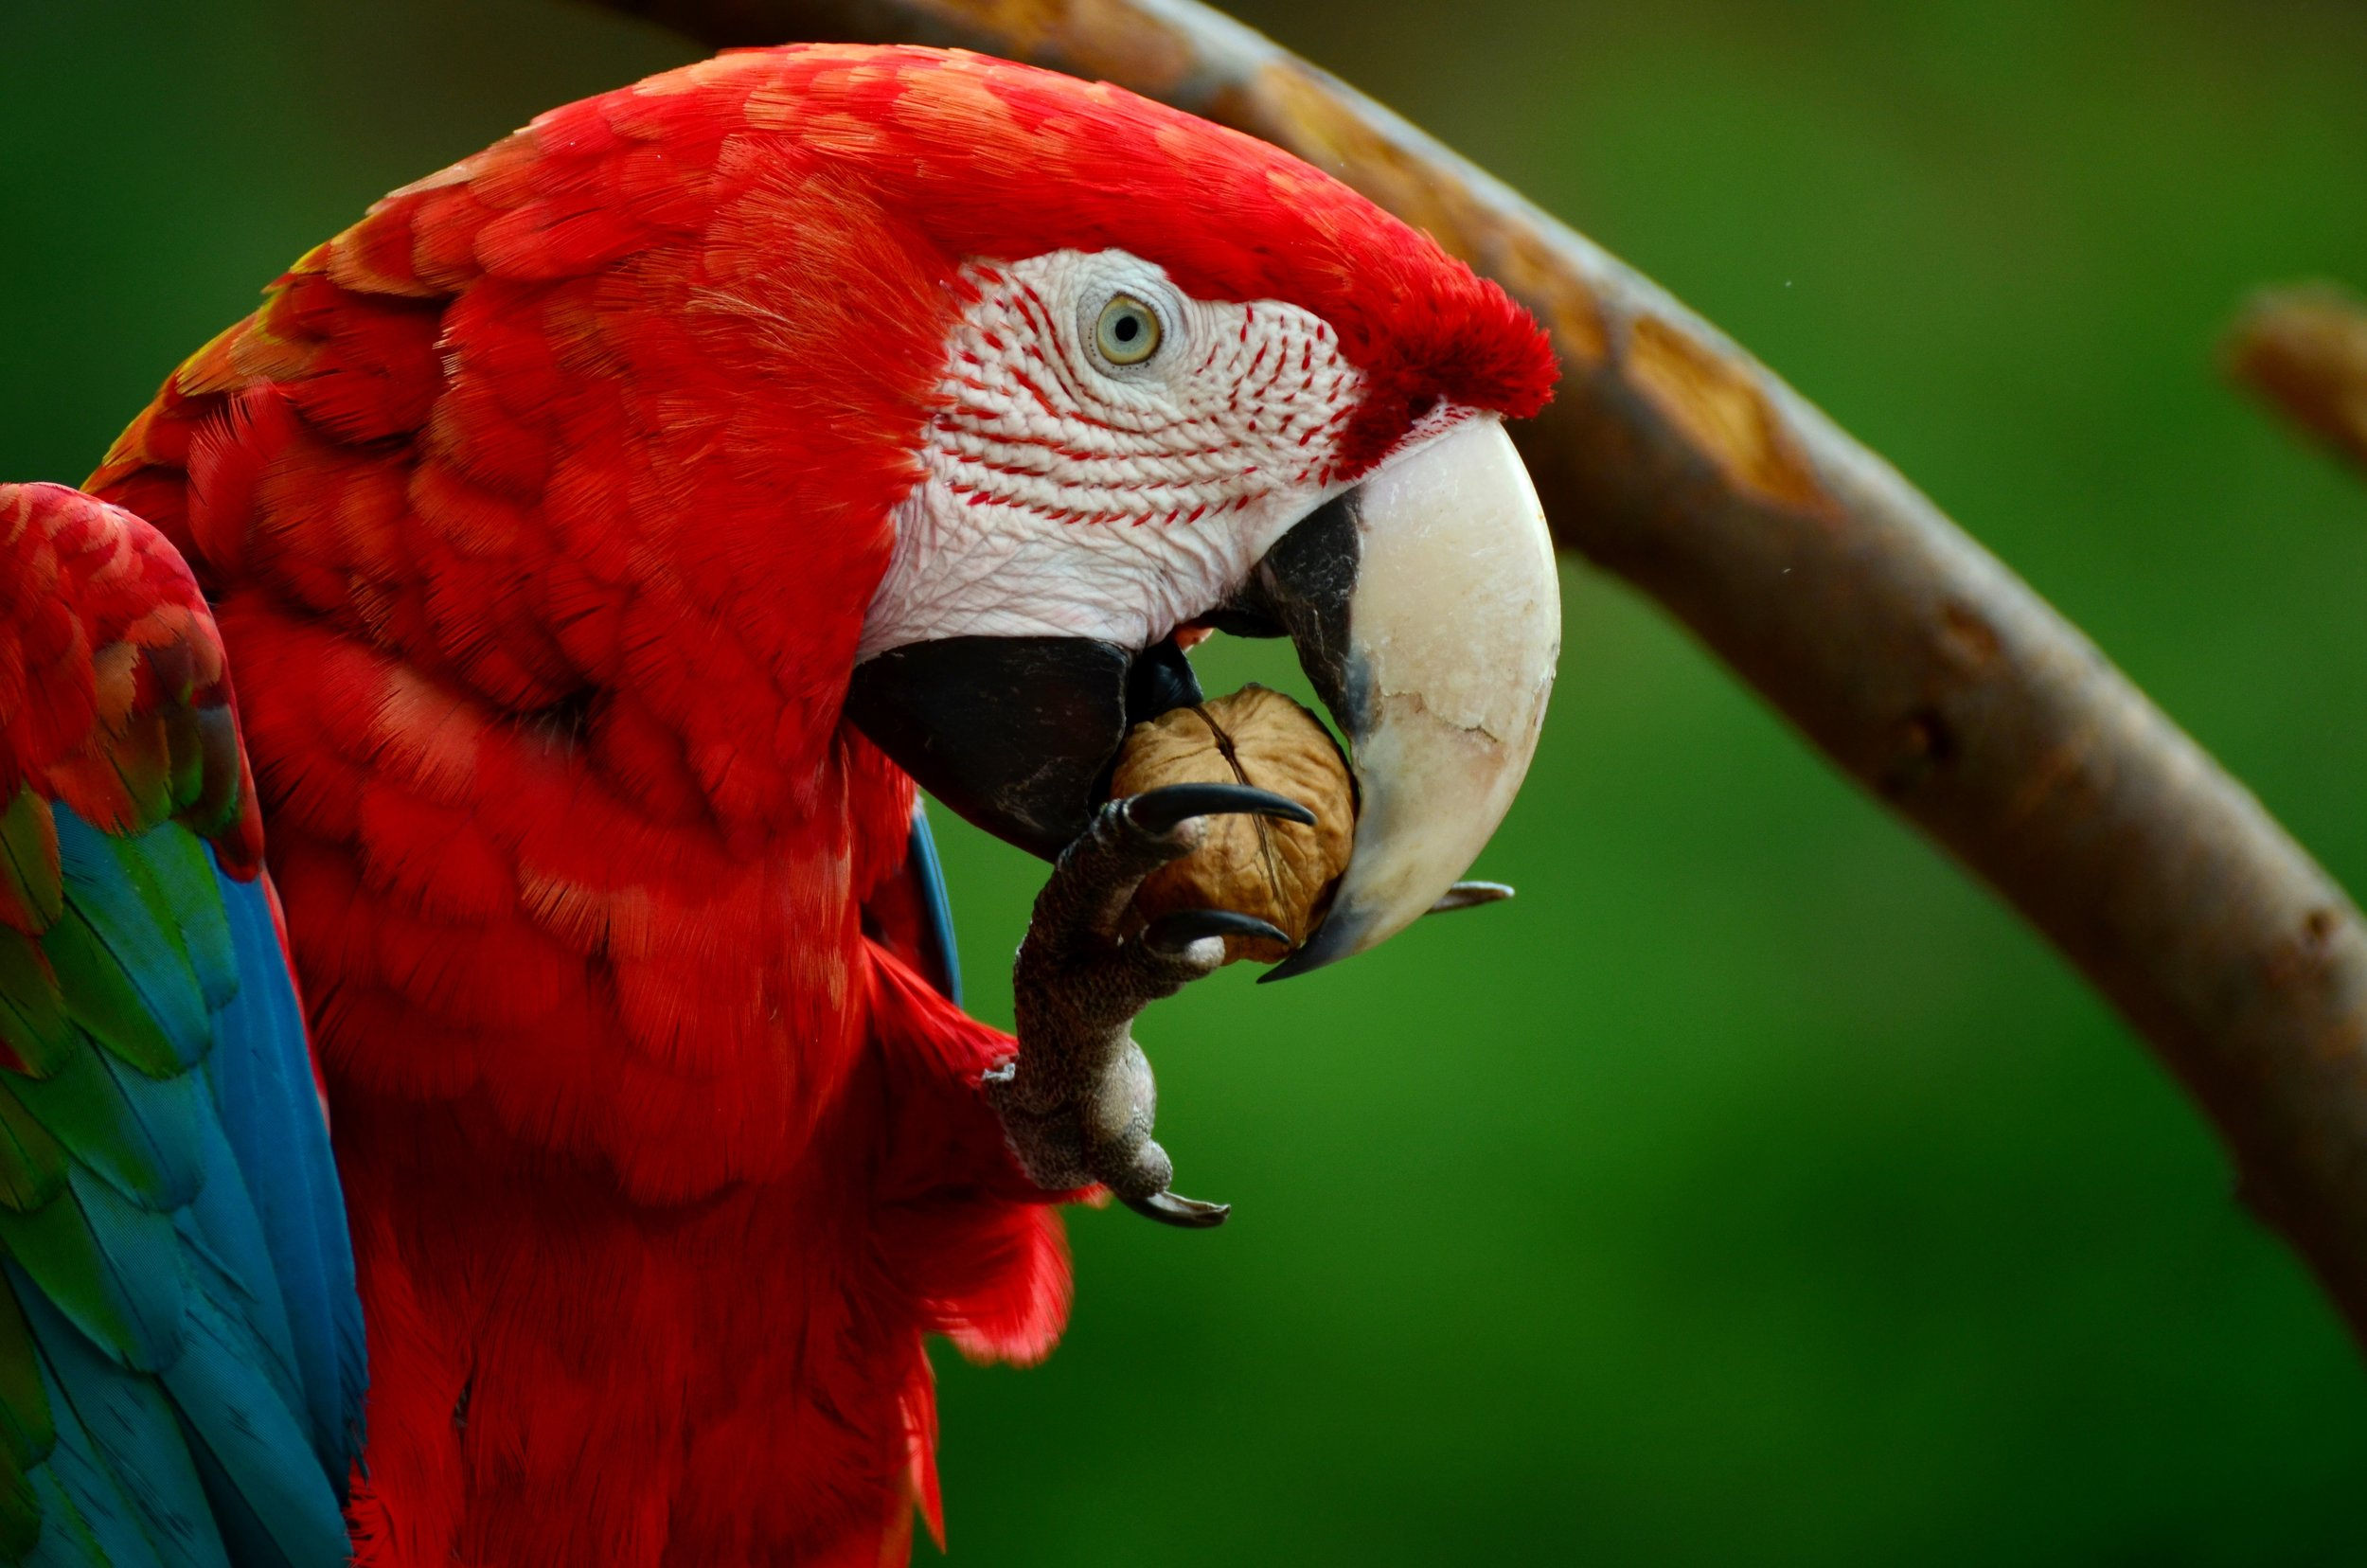 Macaws - Our favorite long tailed colorful friends